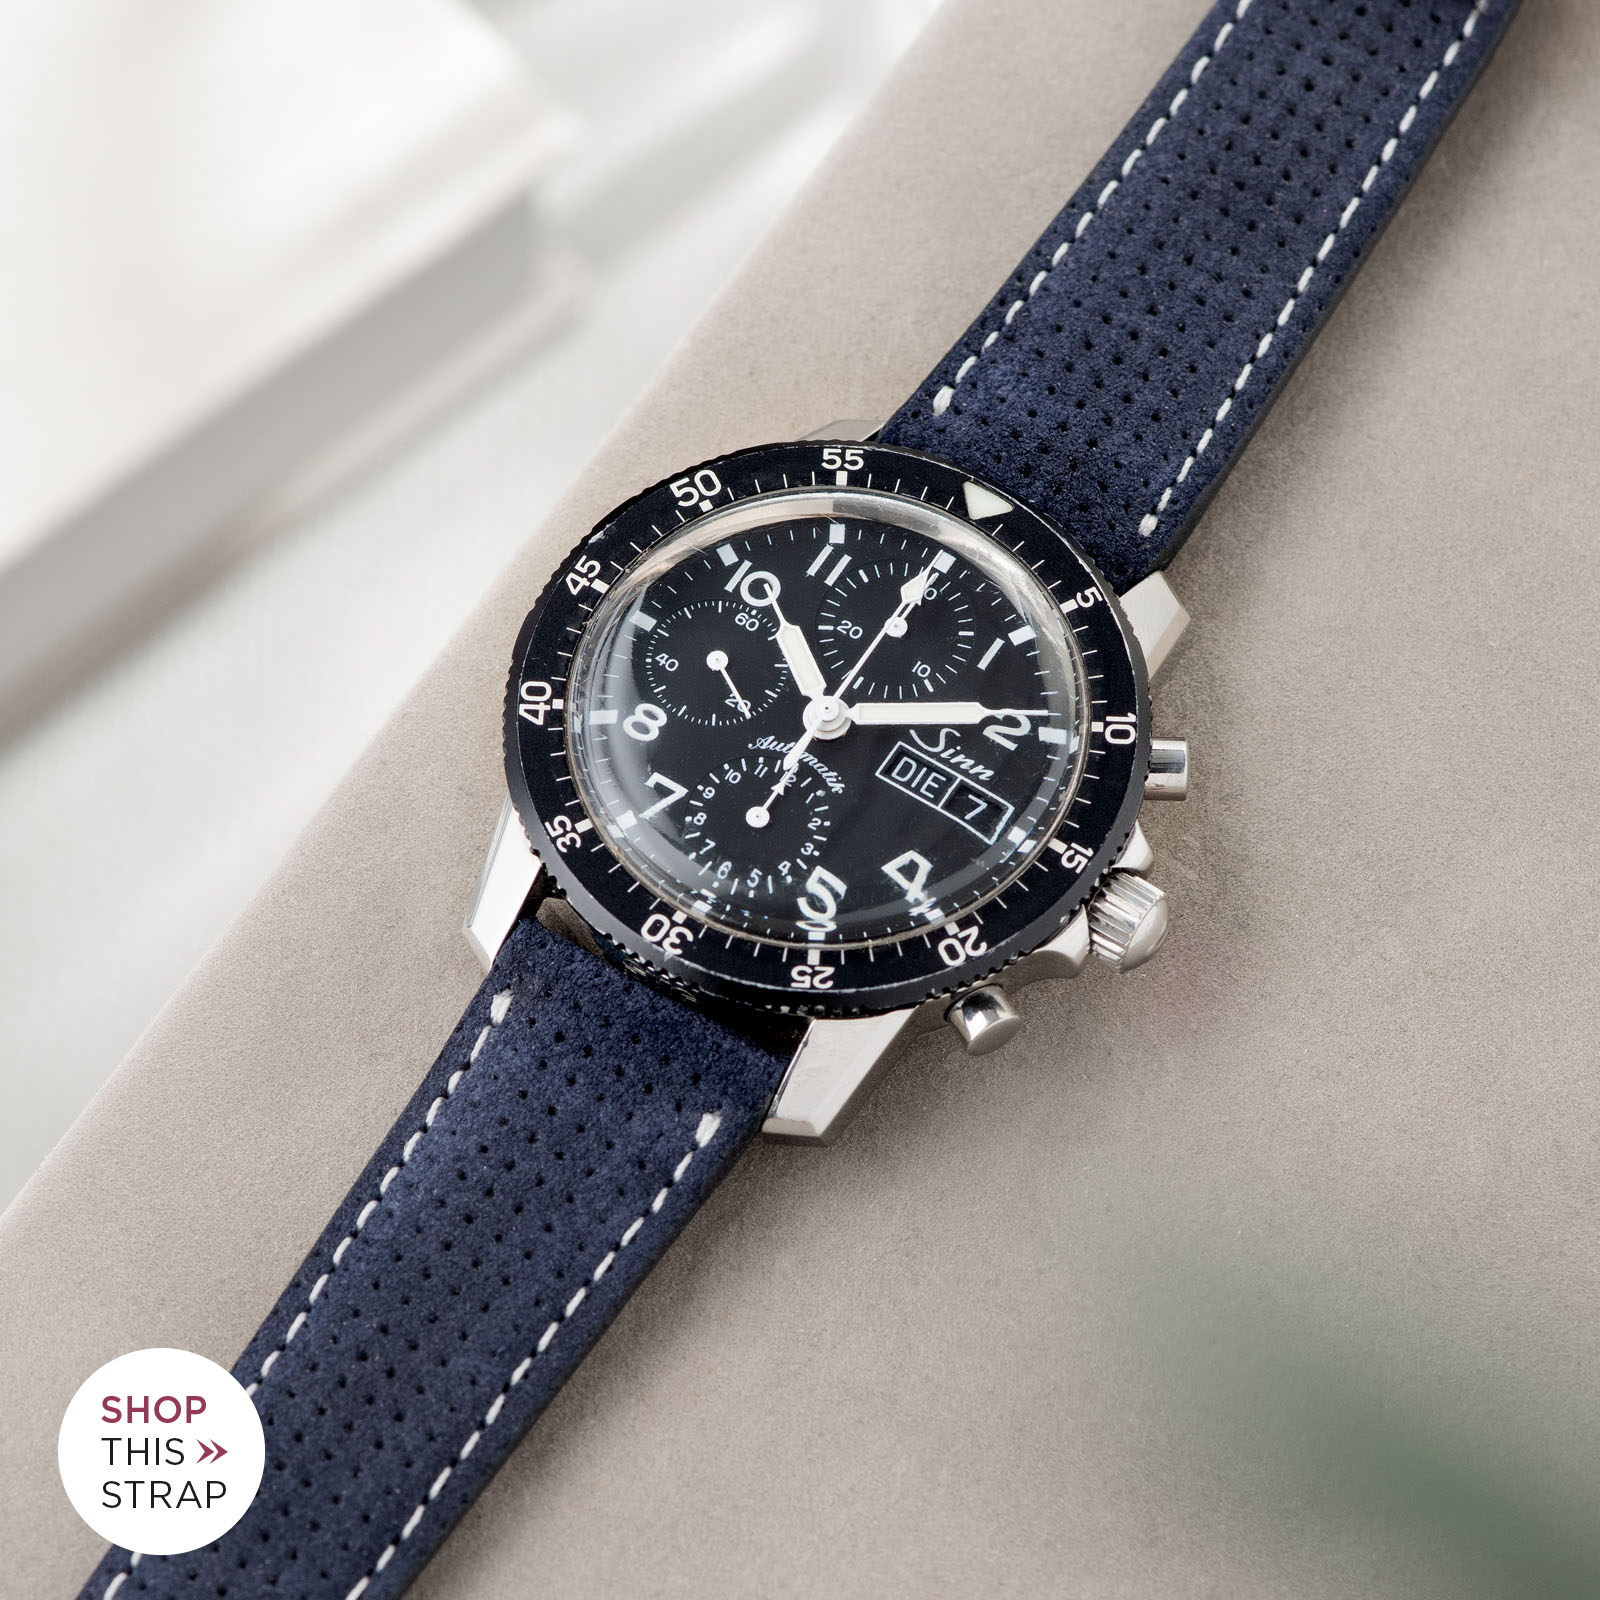 Bulang and Sons_Strap Guide_Sinn 103_Punched Blue Silky Suede Watch Strap